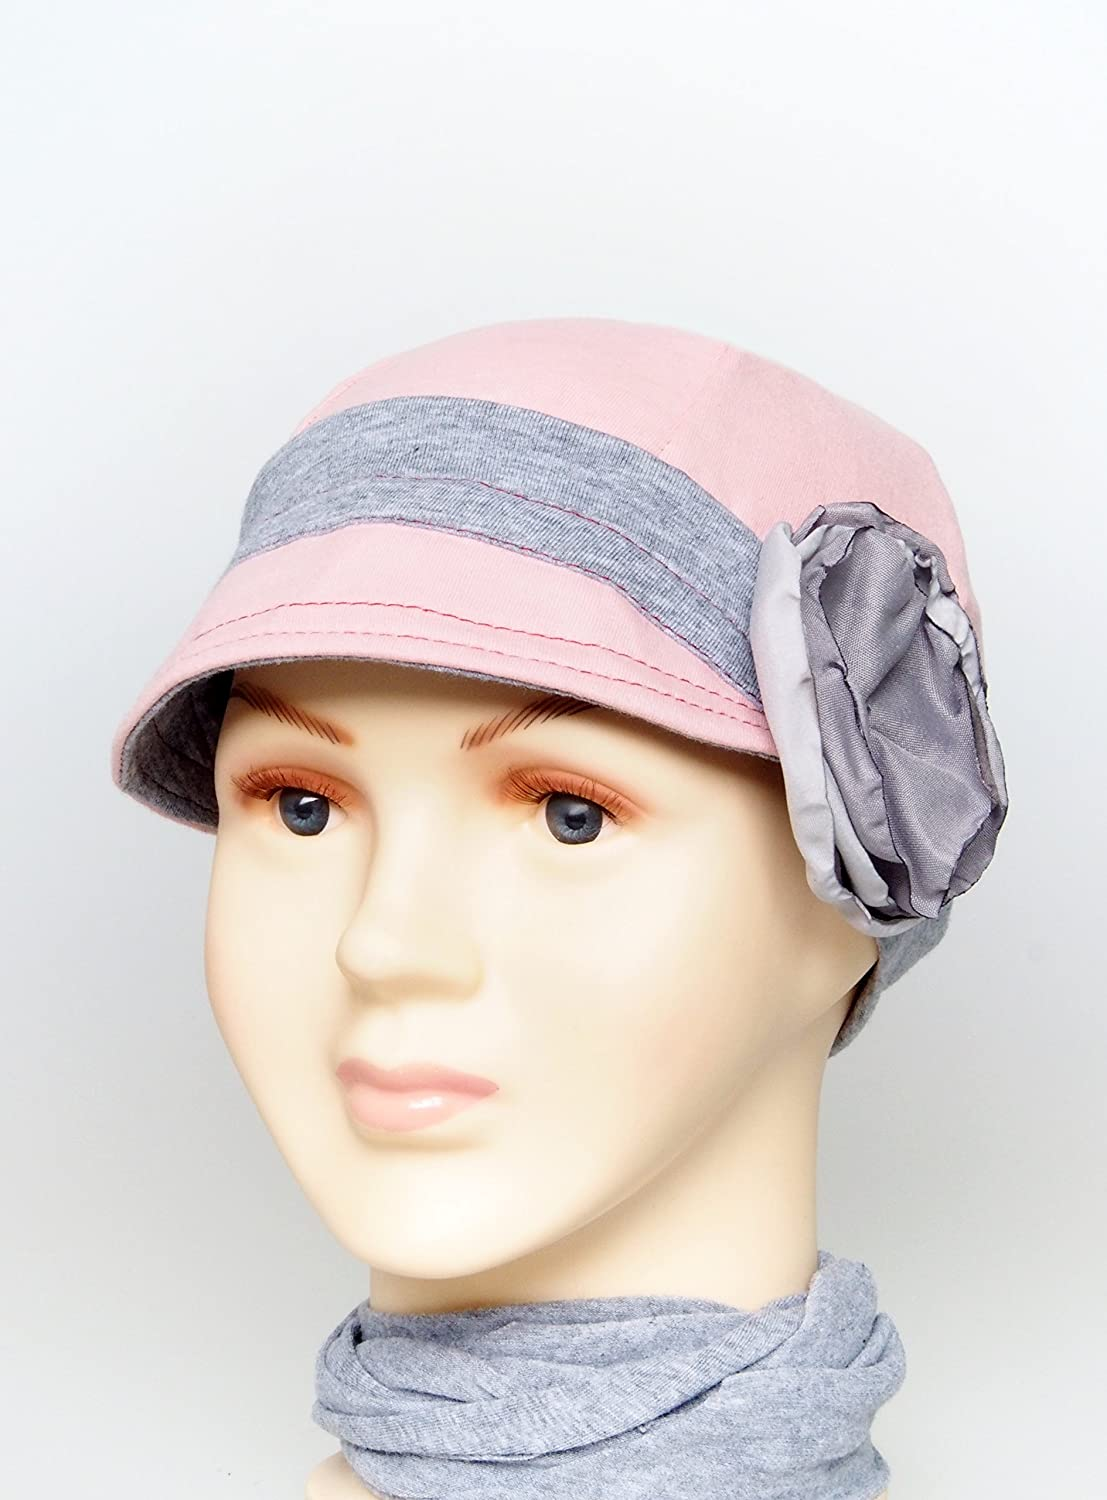 Cancer hat for girls Child Cozy Cap Comfort Chemo headwear children chemo cap alopecia cotton beanies for child